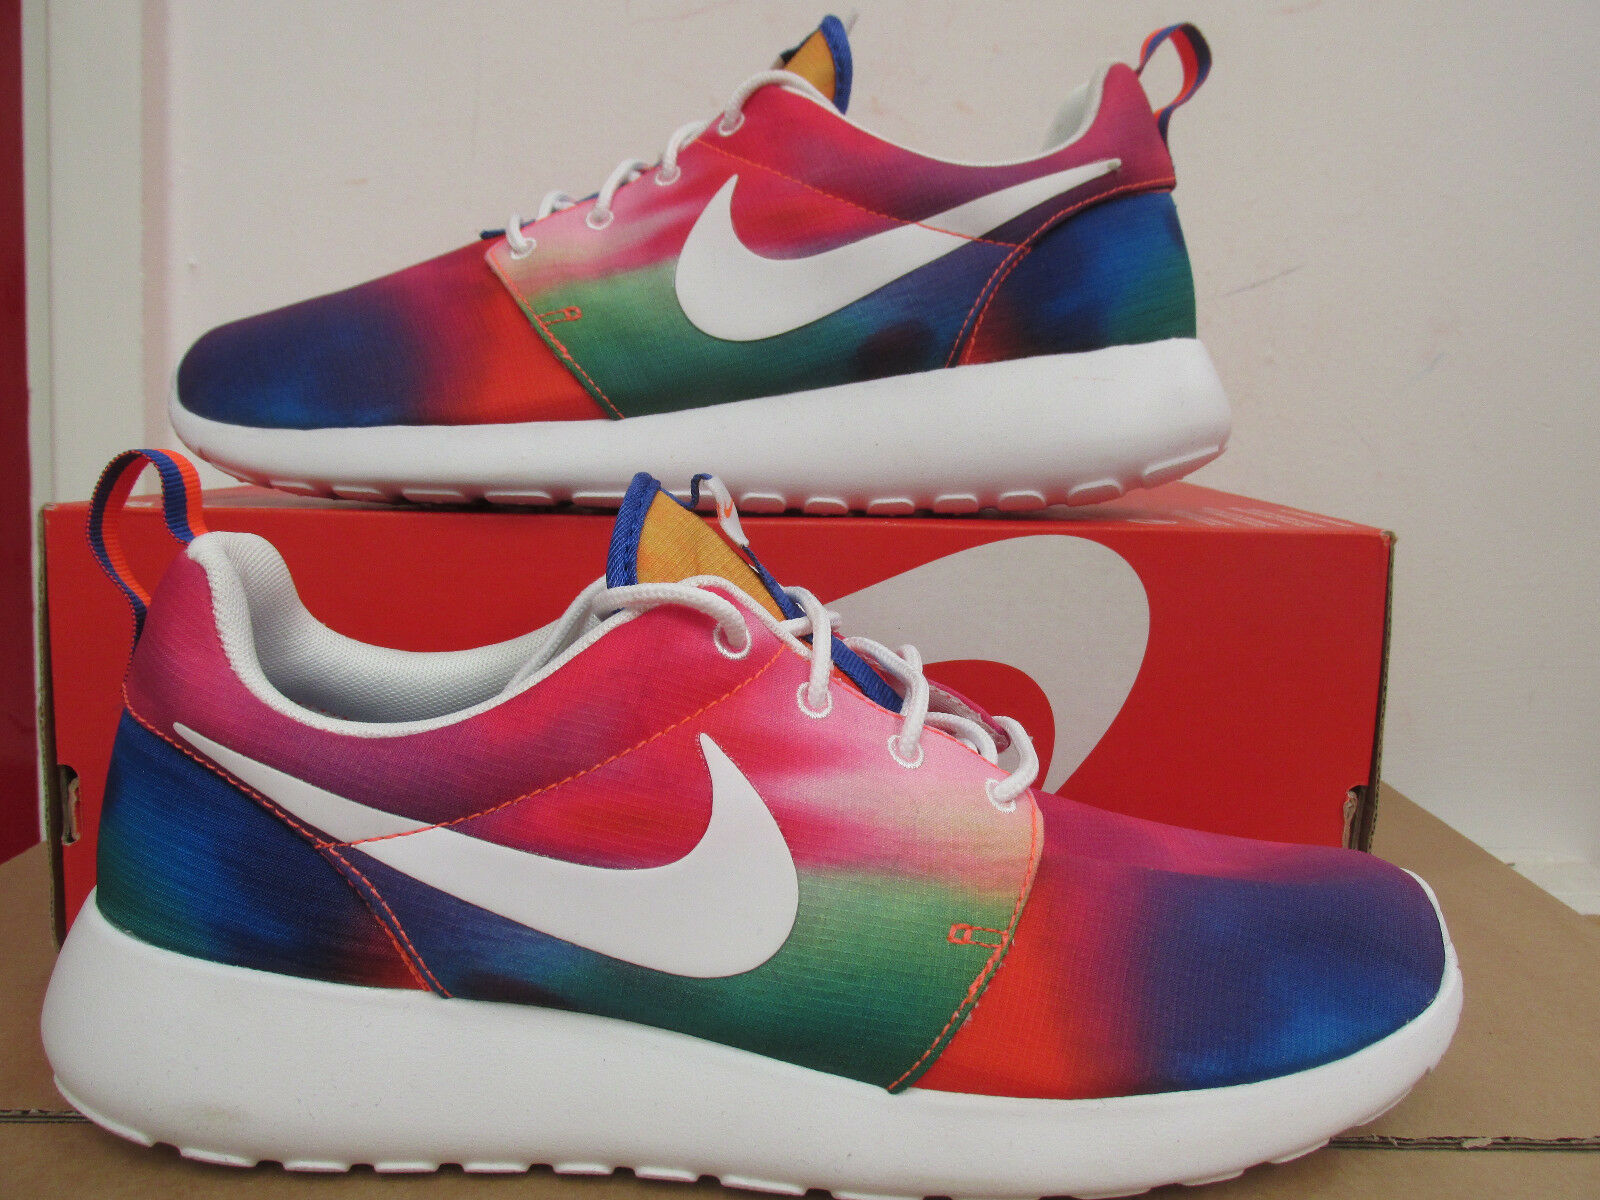 New shoes for men and women, limited time discount nike rosherun print mens running trainers 655206 518 sneaker shoes CLEARANCE